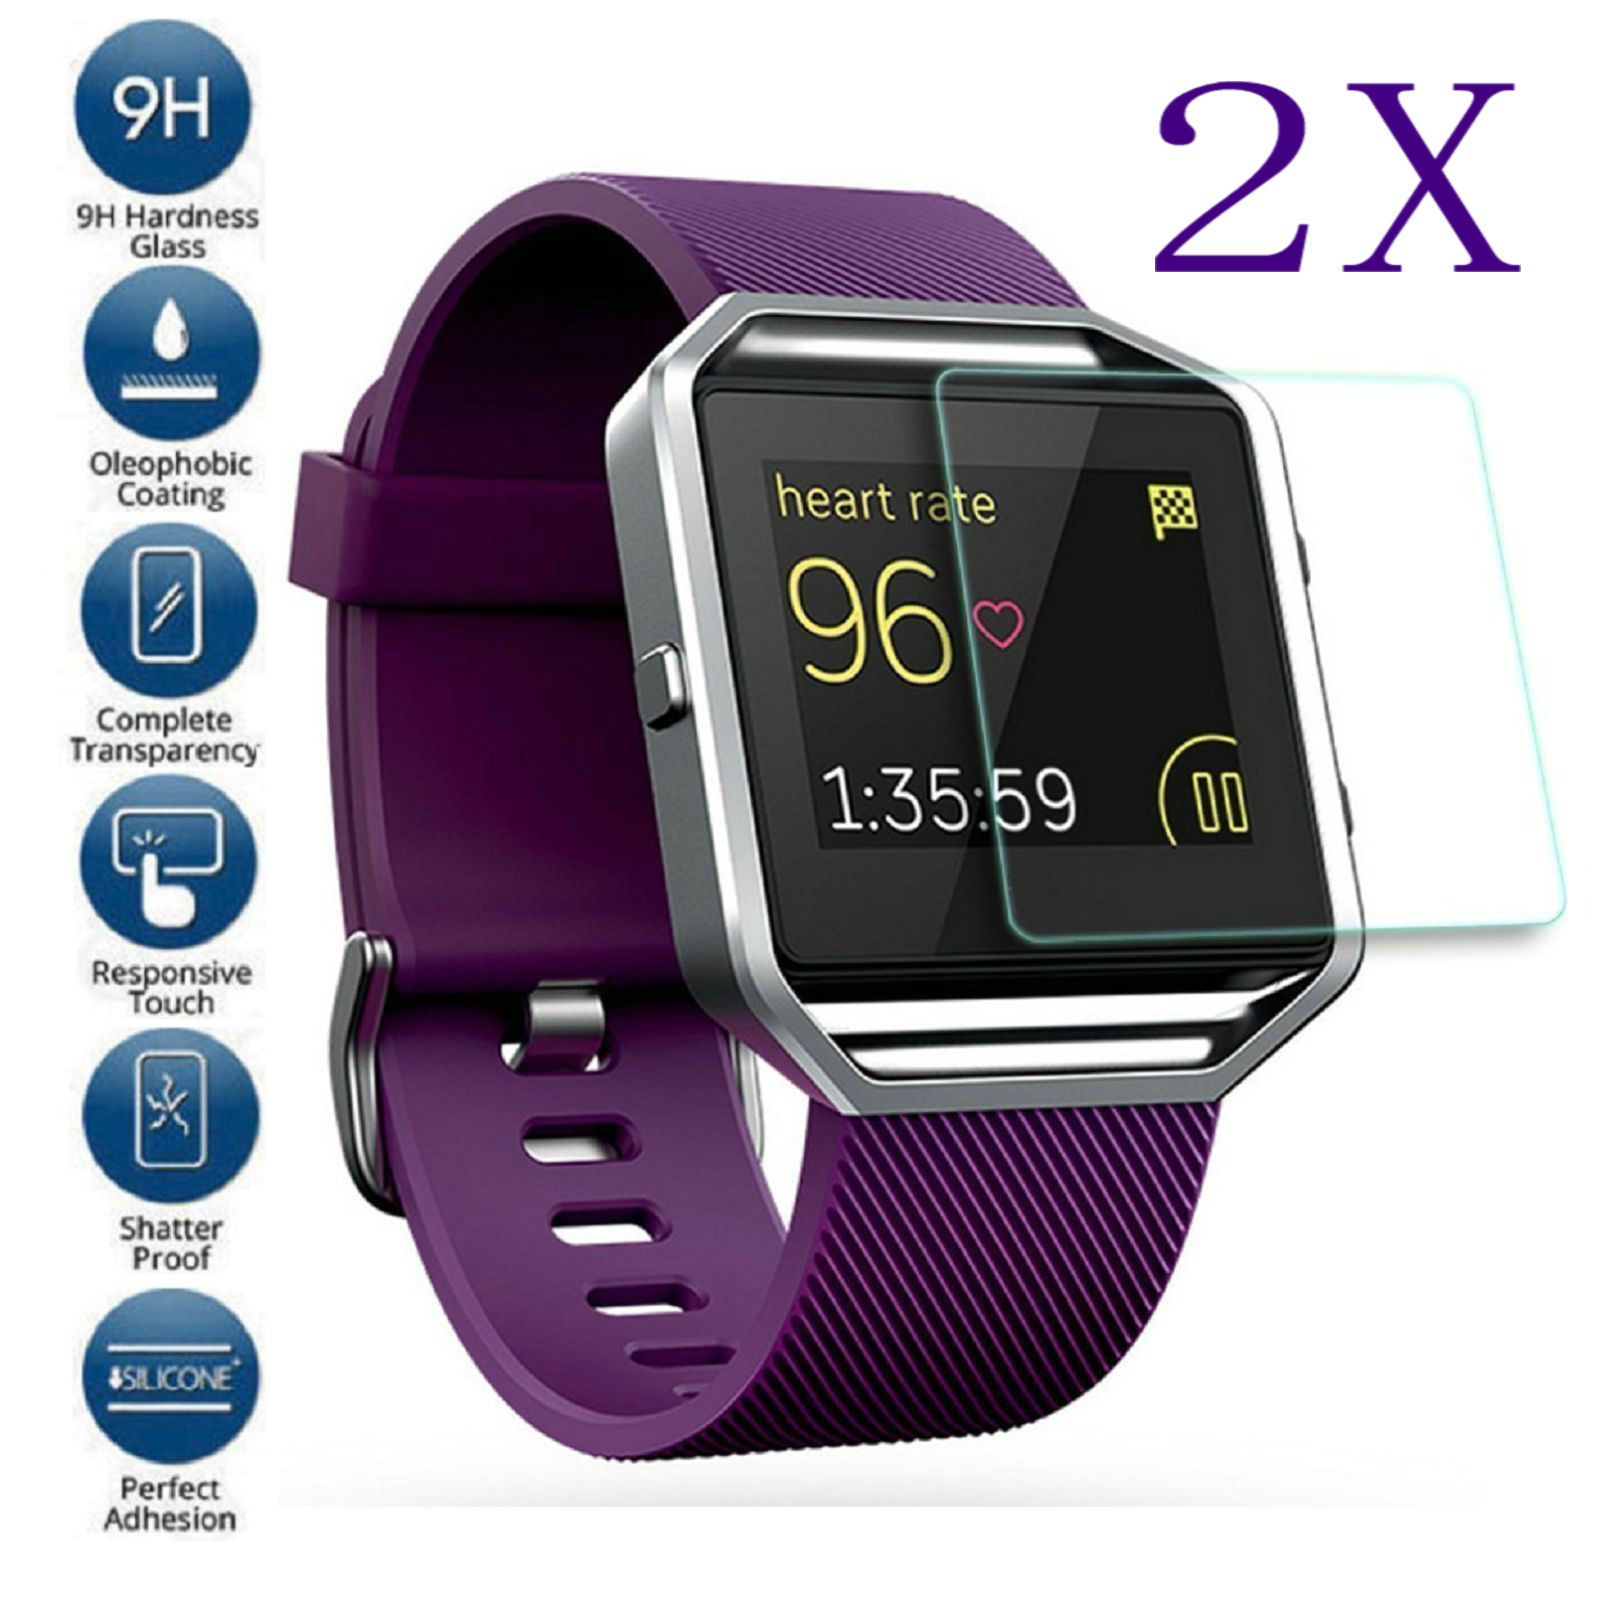 2 Pack Premium Crystal Clear Tempered Glass Screen Protector Cover for FitBit Blaze - 2 Pcs AmazingForLess